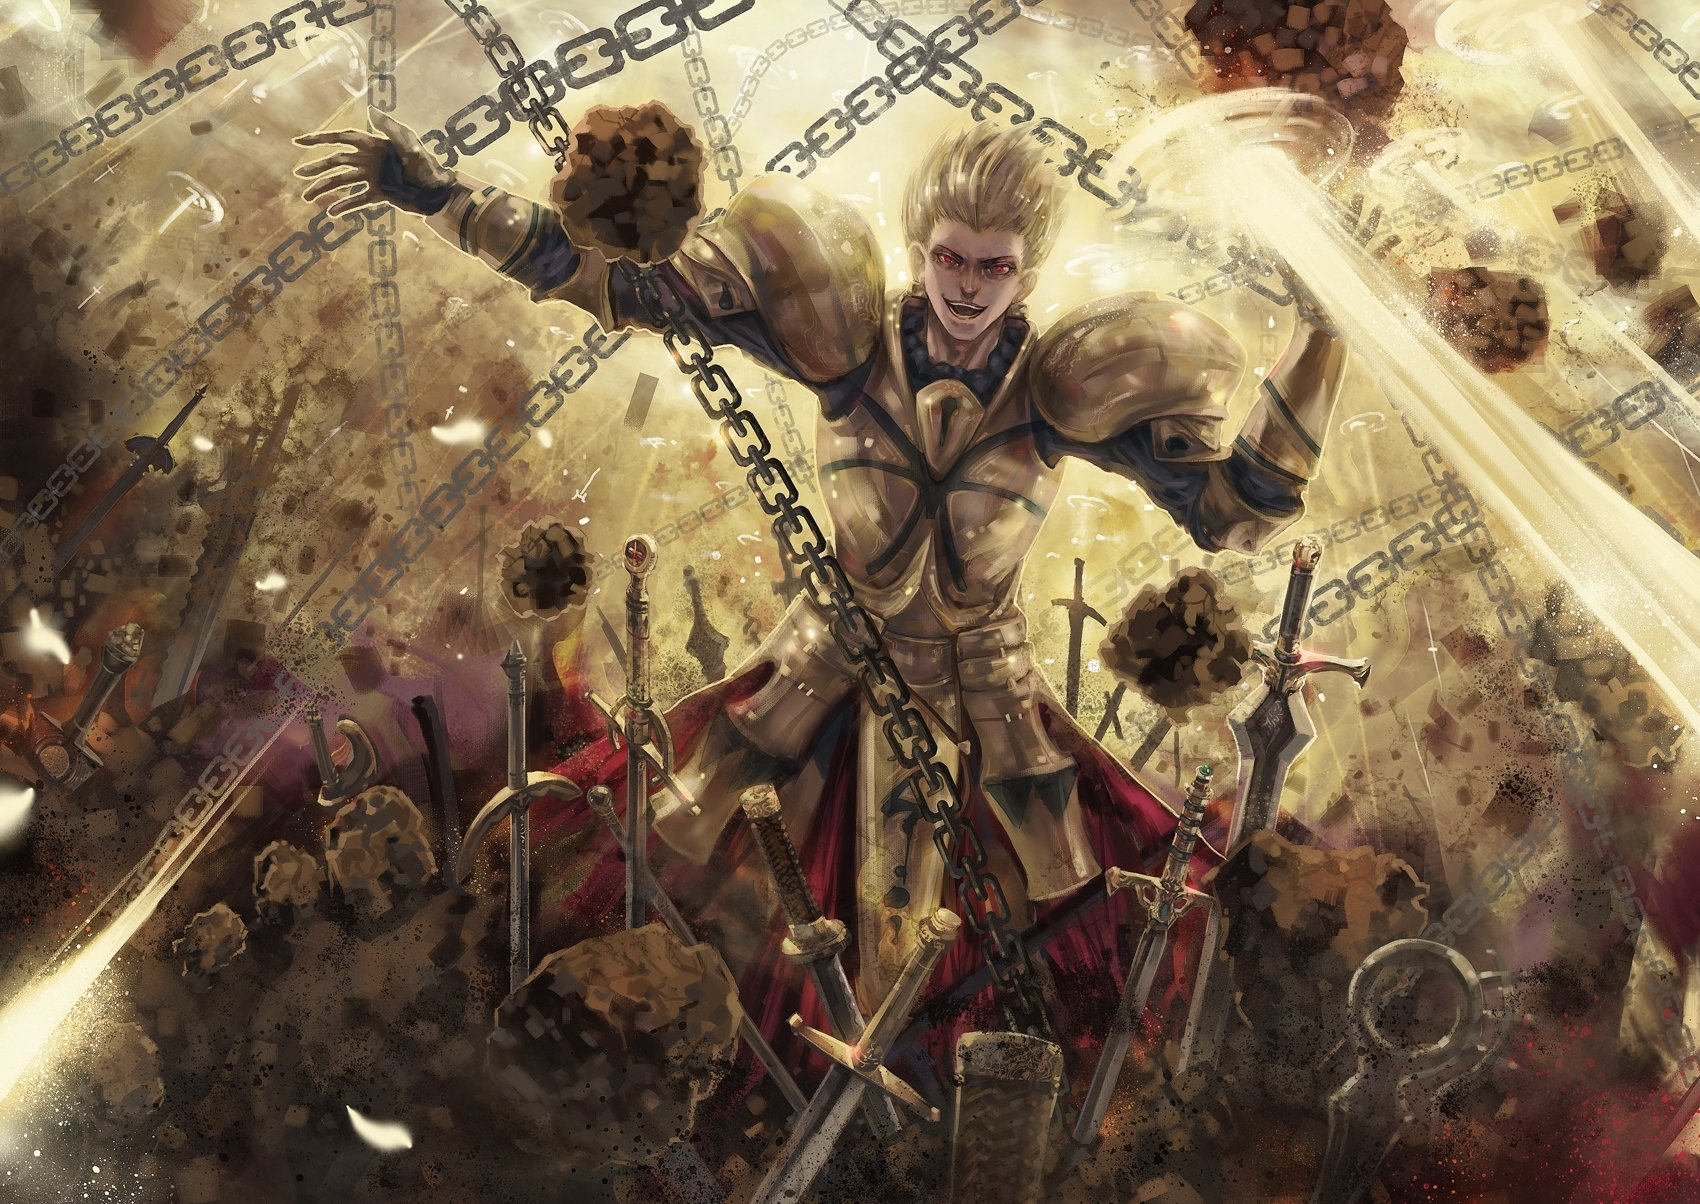 Hd Wallpaper Fate Zero Gilgamesh 1660367 Hd Wallpaper